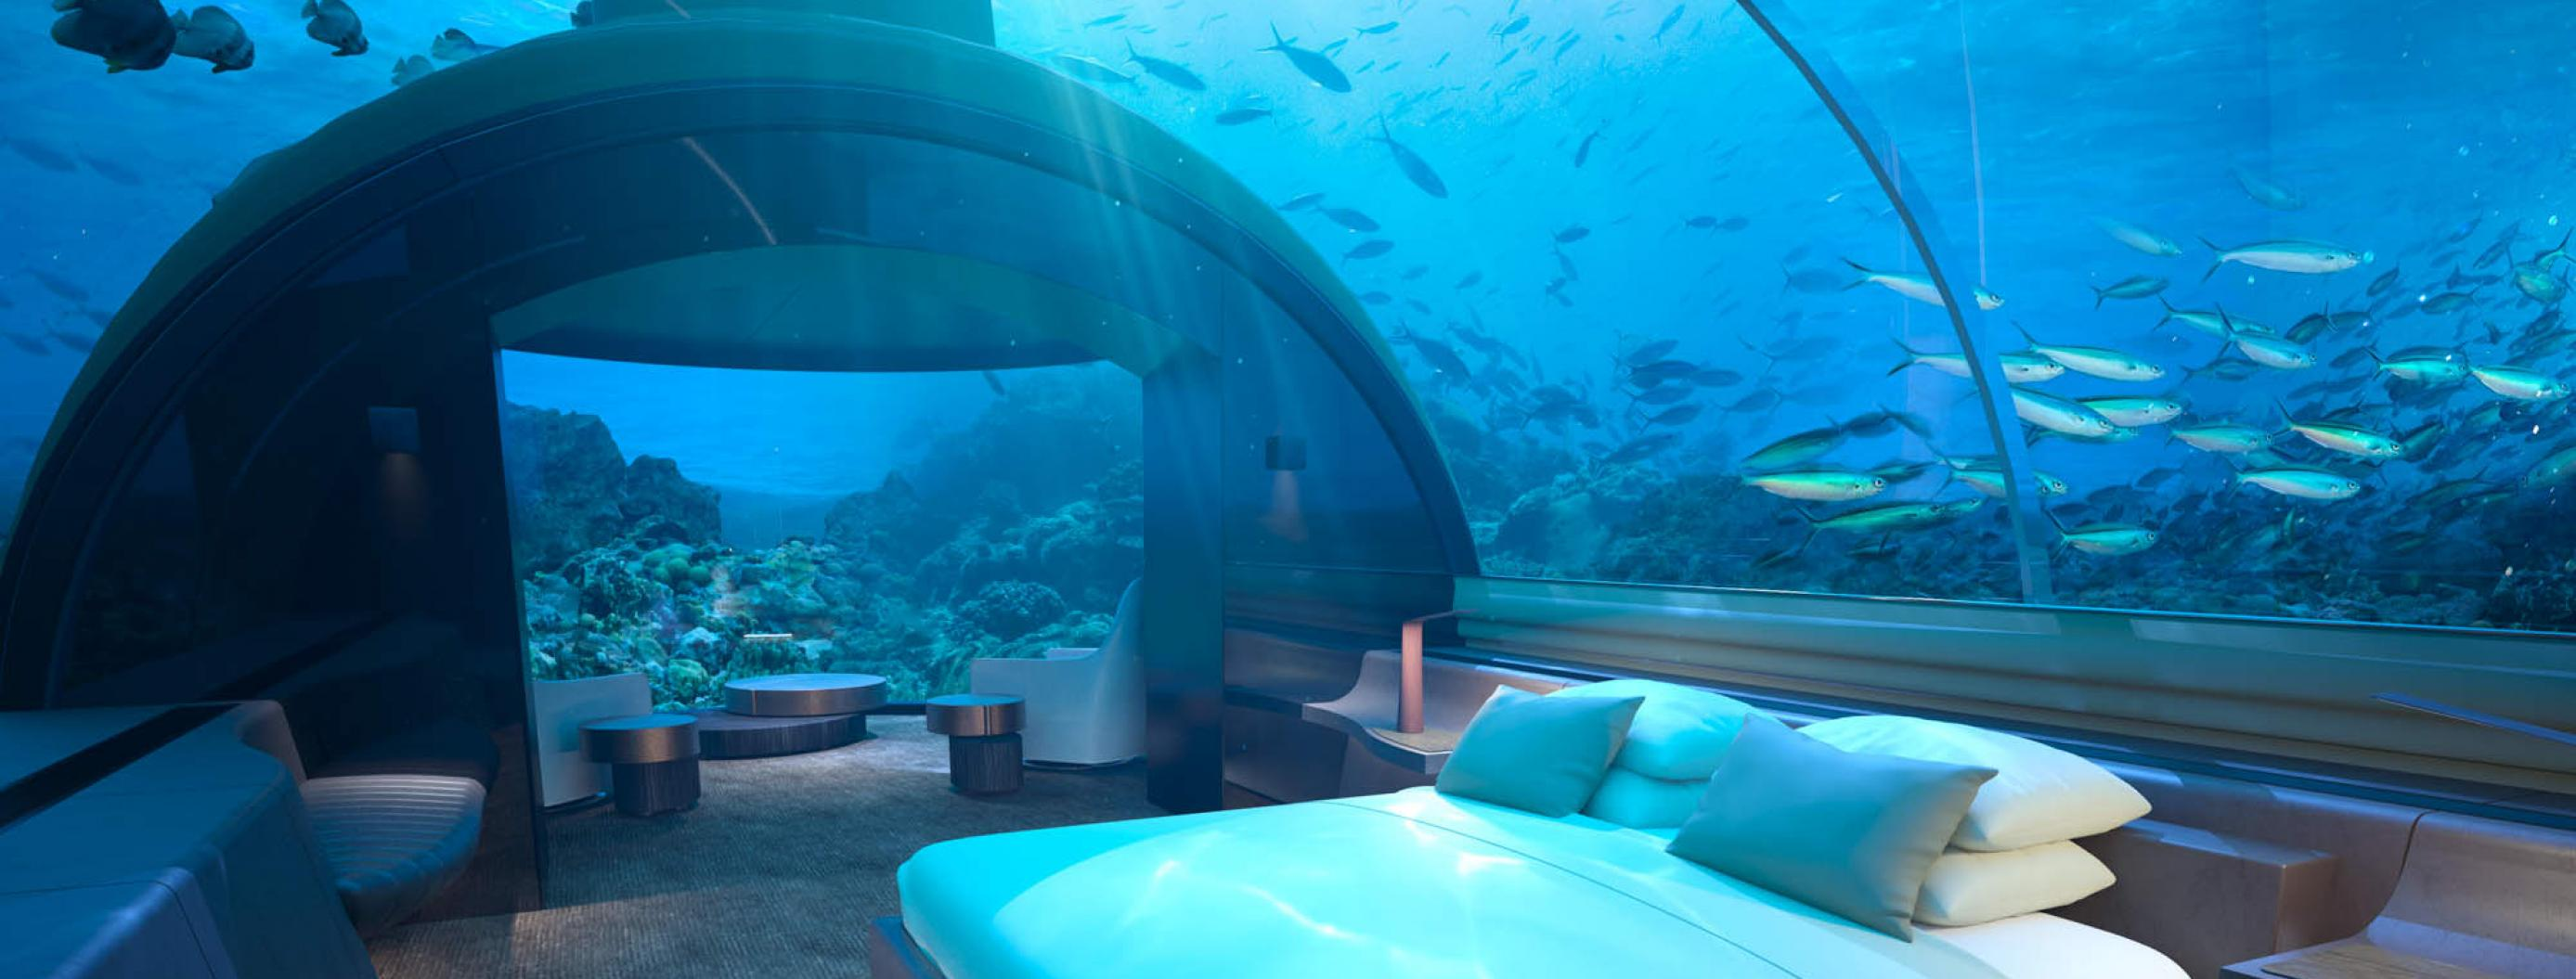 World's First Underwater Hotel Villa to Open in the Maldives